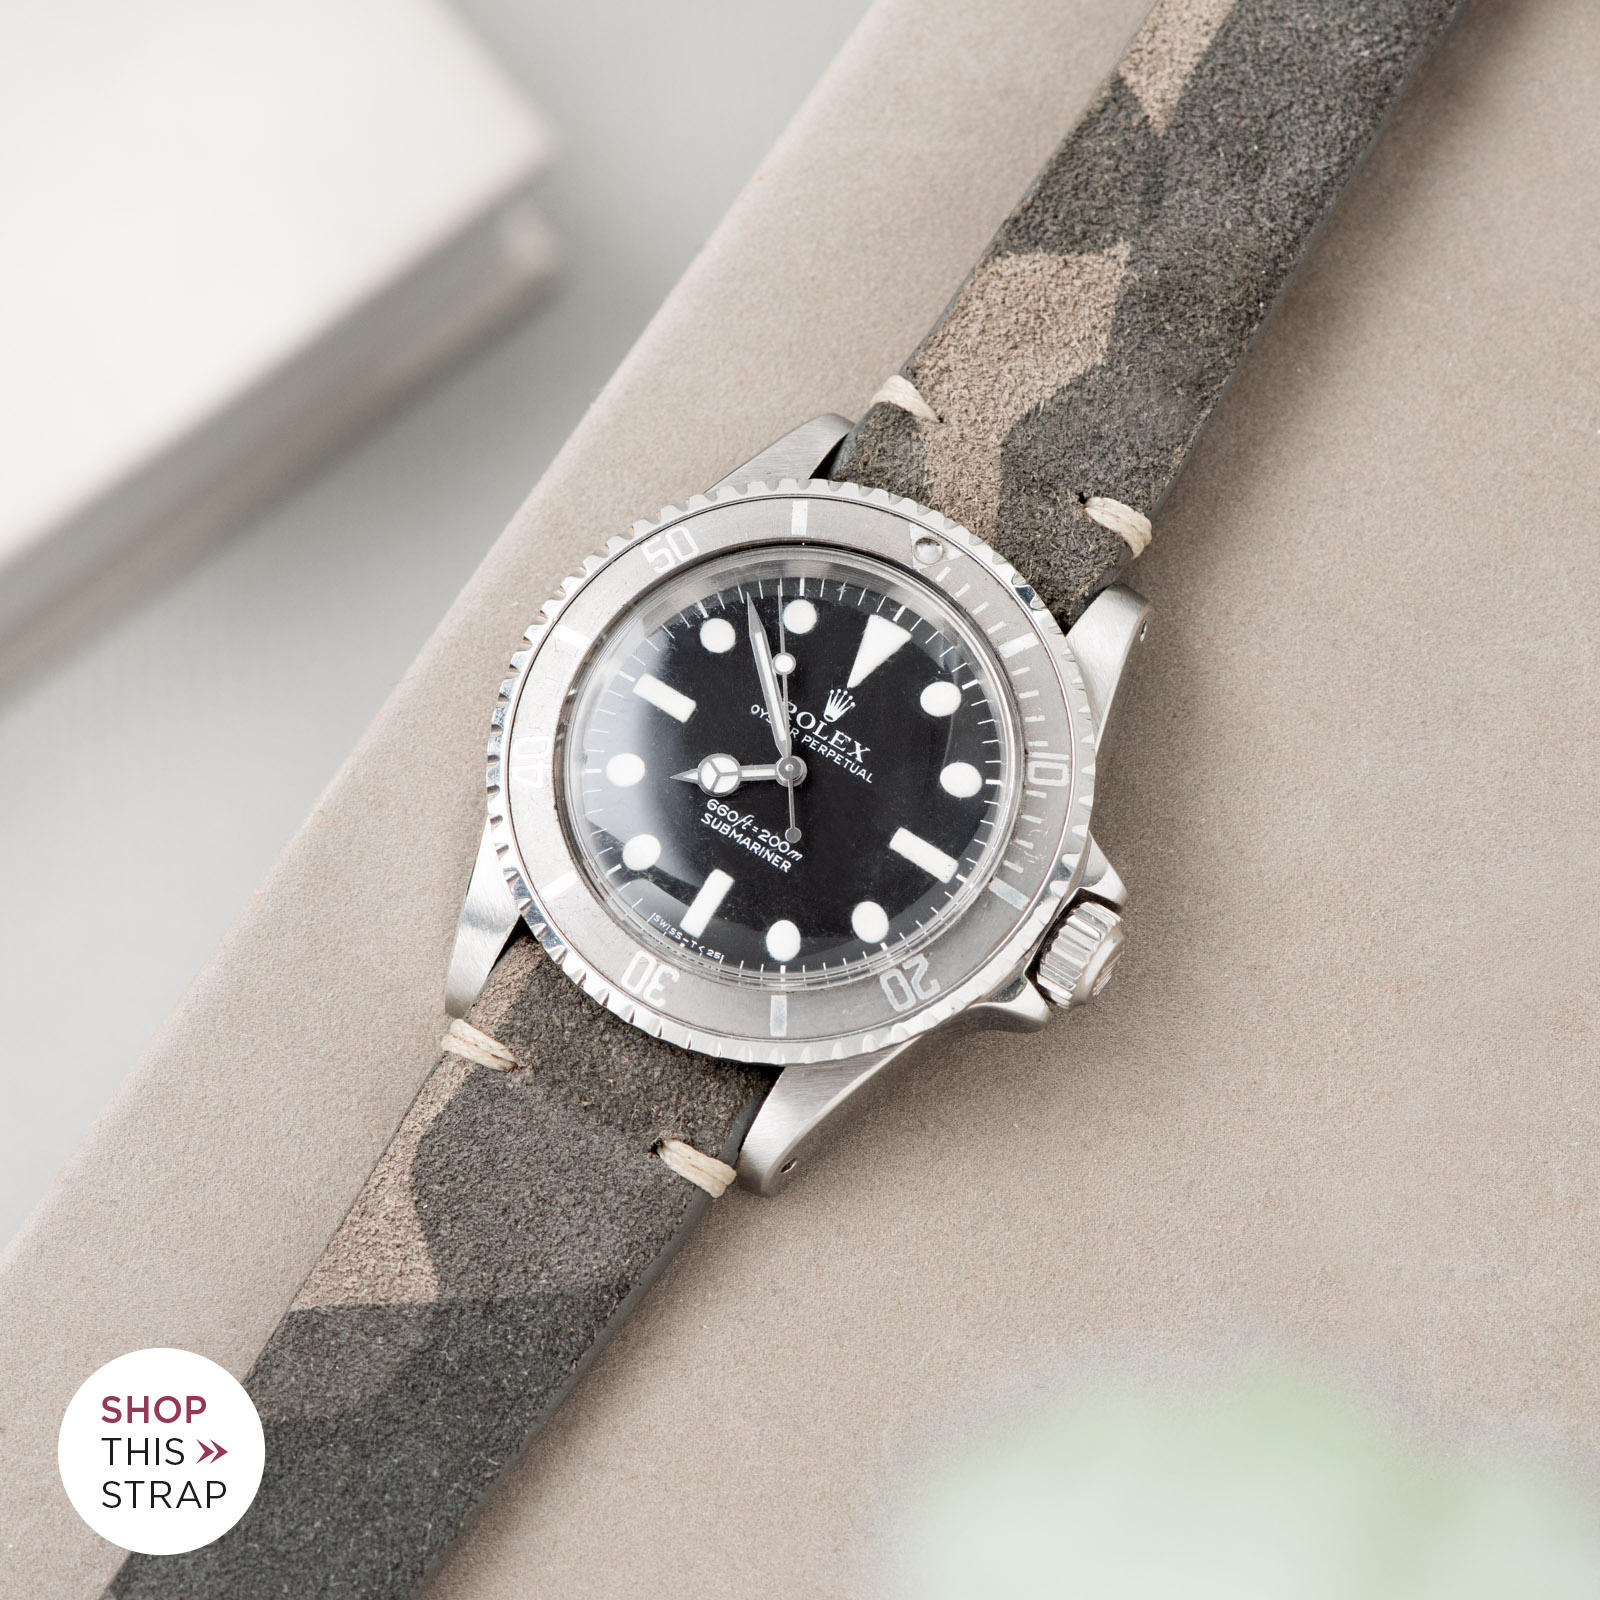 Bulang and Sons_Strap Guide_Rolex Submariner 5513 Faded_Dark Camo Grey Silky Suede Watch Strap